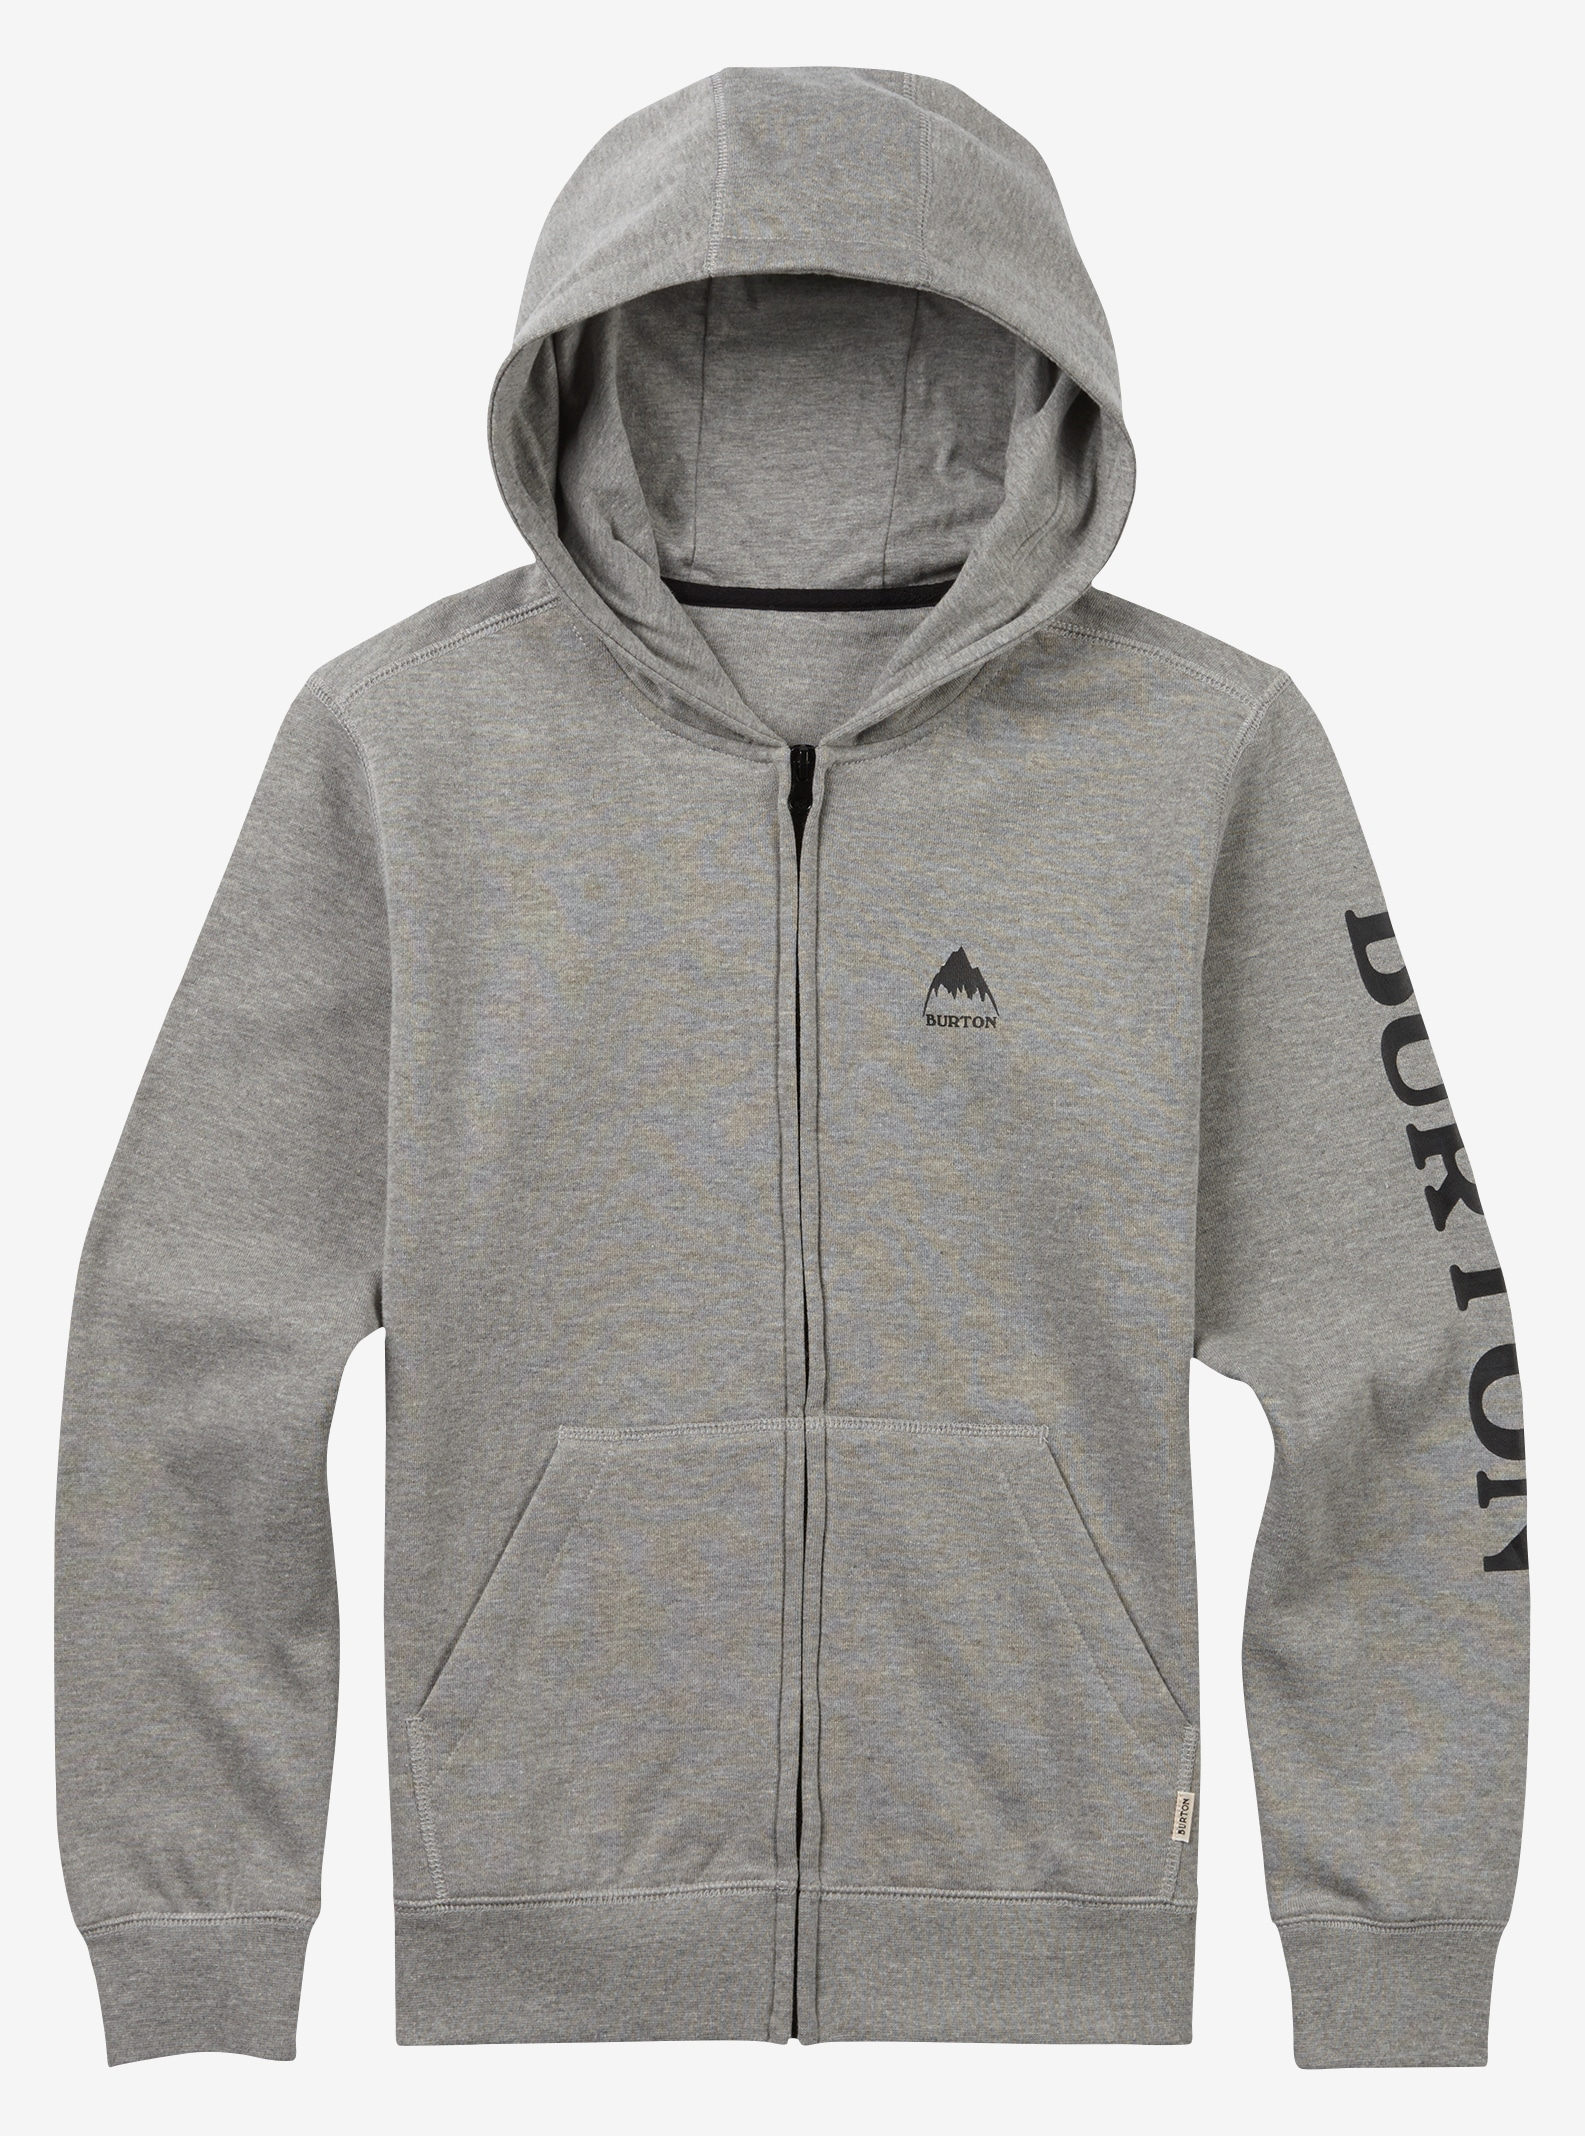 Boys' Burton Elite Full-Zip Hoodie shown in Gray Heather